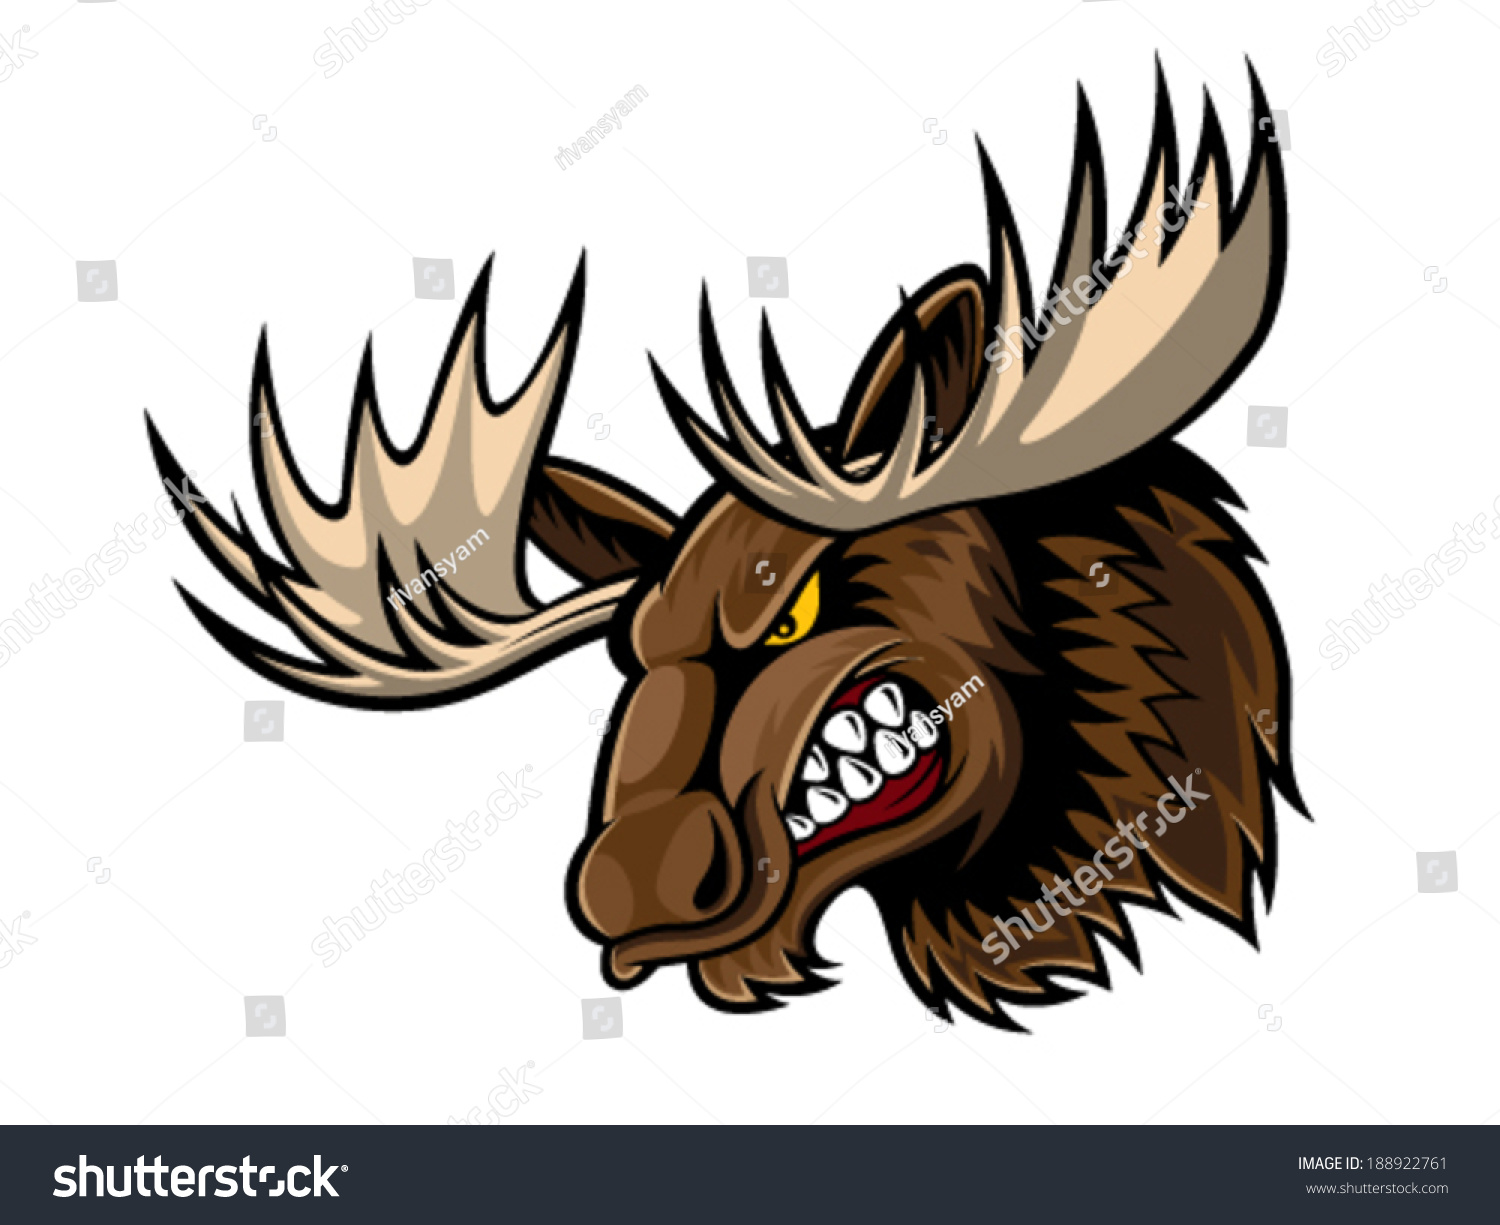 Big Game Outfitter Logo Design in addition Stock Illustration Set Hunting Adventure Badge Logo Design Emblem Label Insignia Sticker Vector Illustration Resize Able Image57511710 in addition Stock Photography Heraldic Stag Image10627172 moreover Stock Vector Forest Wild Boars Cartoon Mascots Showing Red And Brown Angry Pigs With Ruffled Fur And Aggressive additionally 30 Custom Waterfowl Logos. on deer hunting logo design